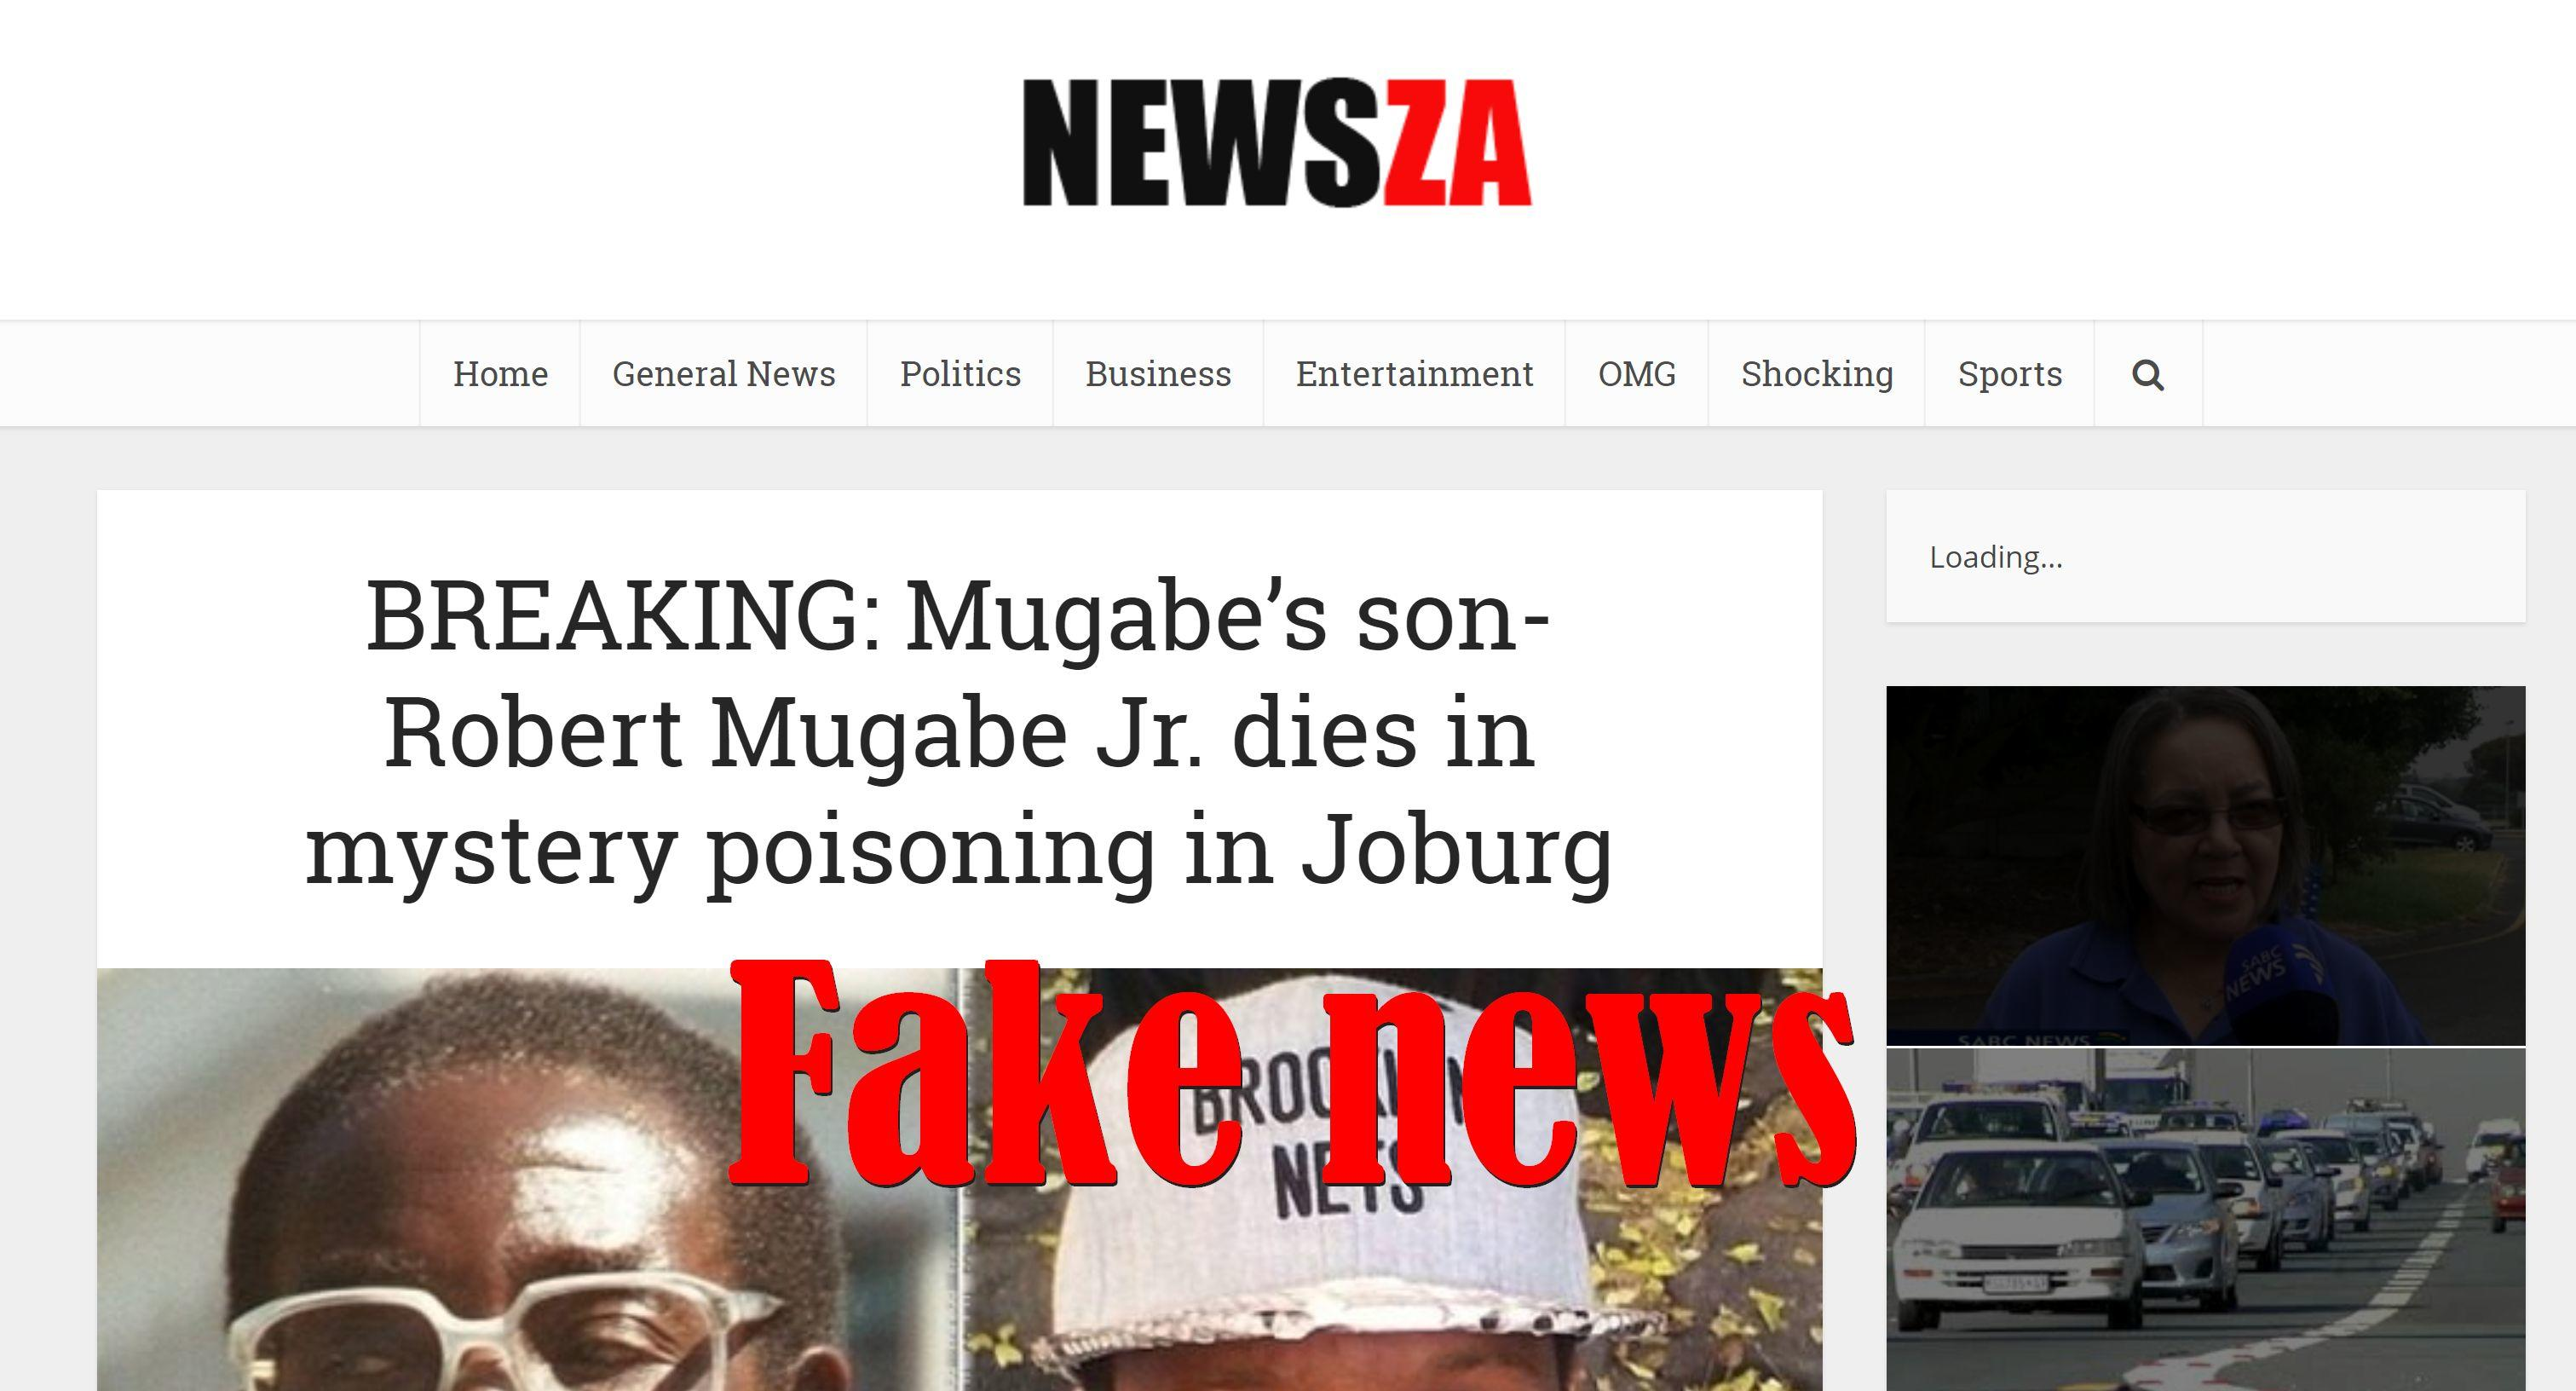 Fake News: Robert Mugabe's Son Did NOT Die In Mystery Poisoning In Joburg